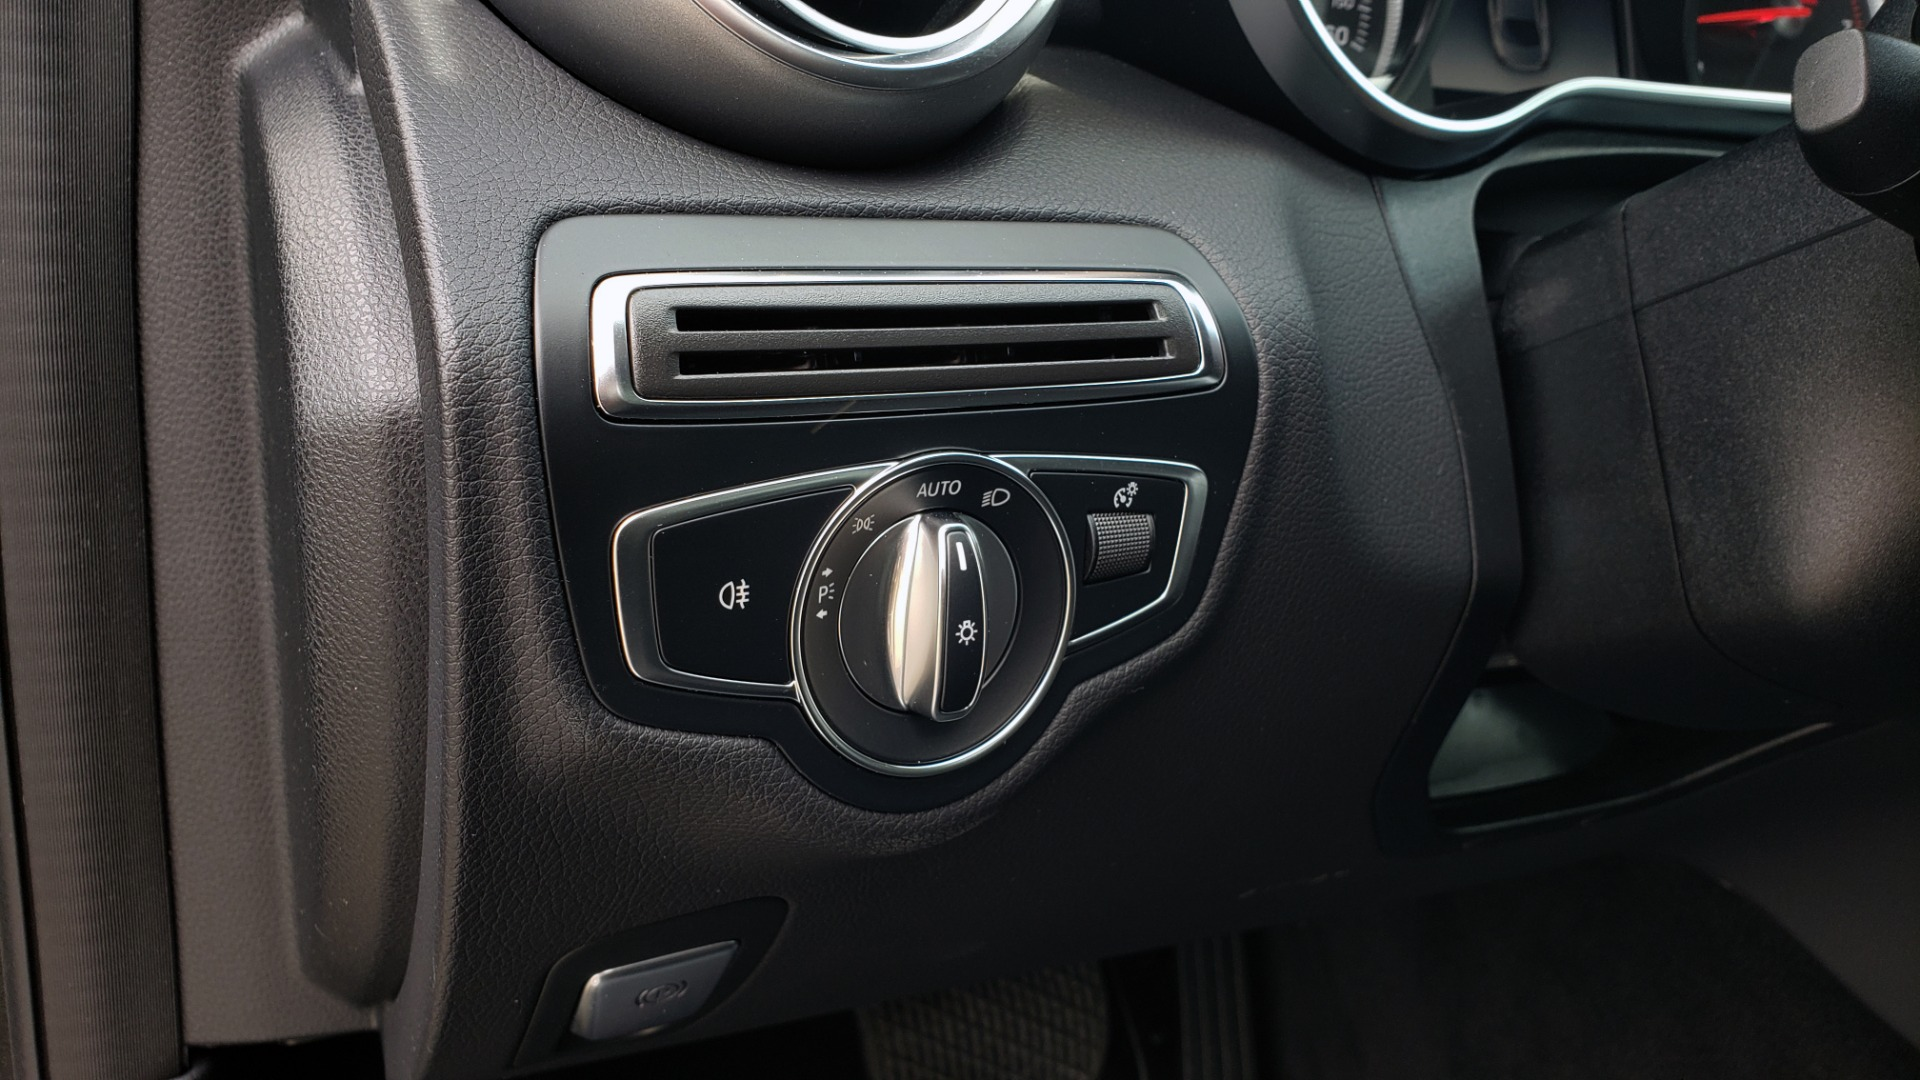 Used 2018 Mercedes-Benz C-CLASS C 300 PREMIUM / HTD STS / APPLE CARPLAY / 18IN WHEELS / REARVIEW for sale $24,795 at Formula Imports in Charlotte NC 28227 38